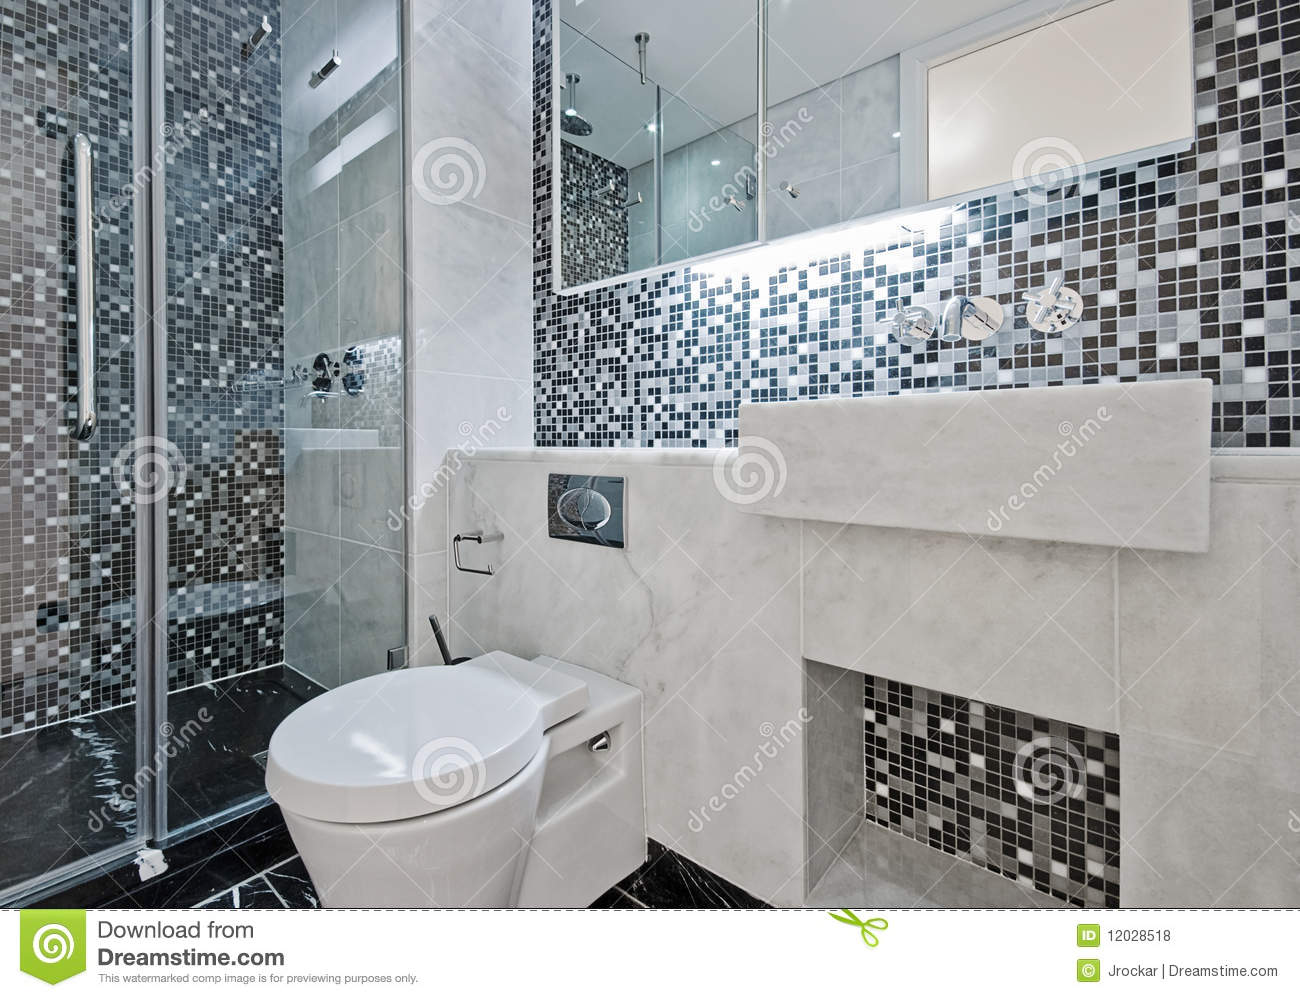 Bathroom with mosaic tiles stock photo image of mixer for Bathroom designs 12x8